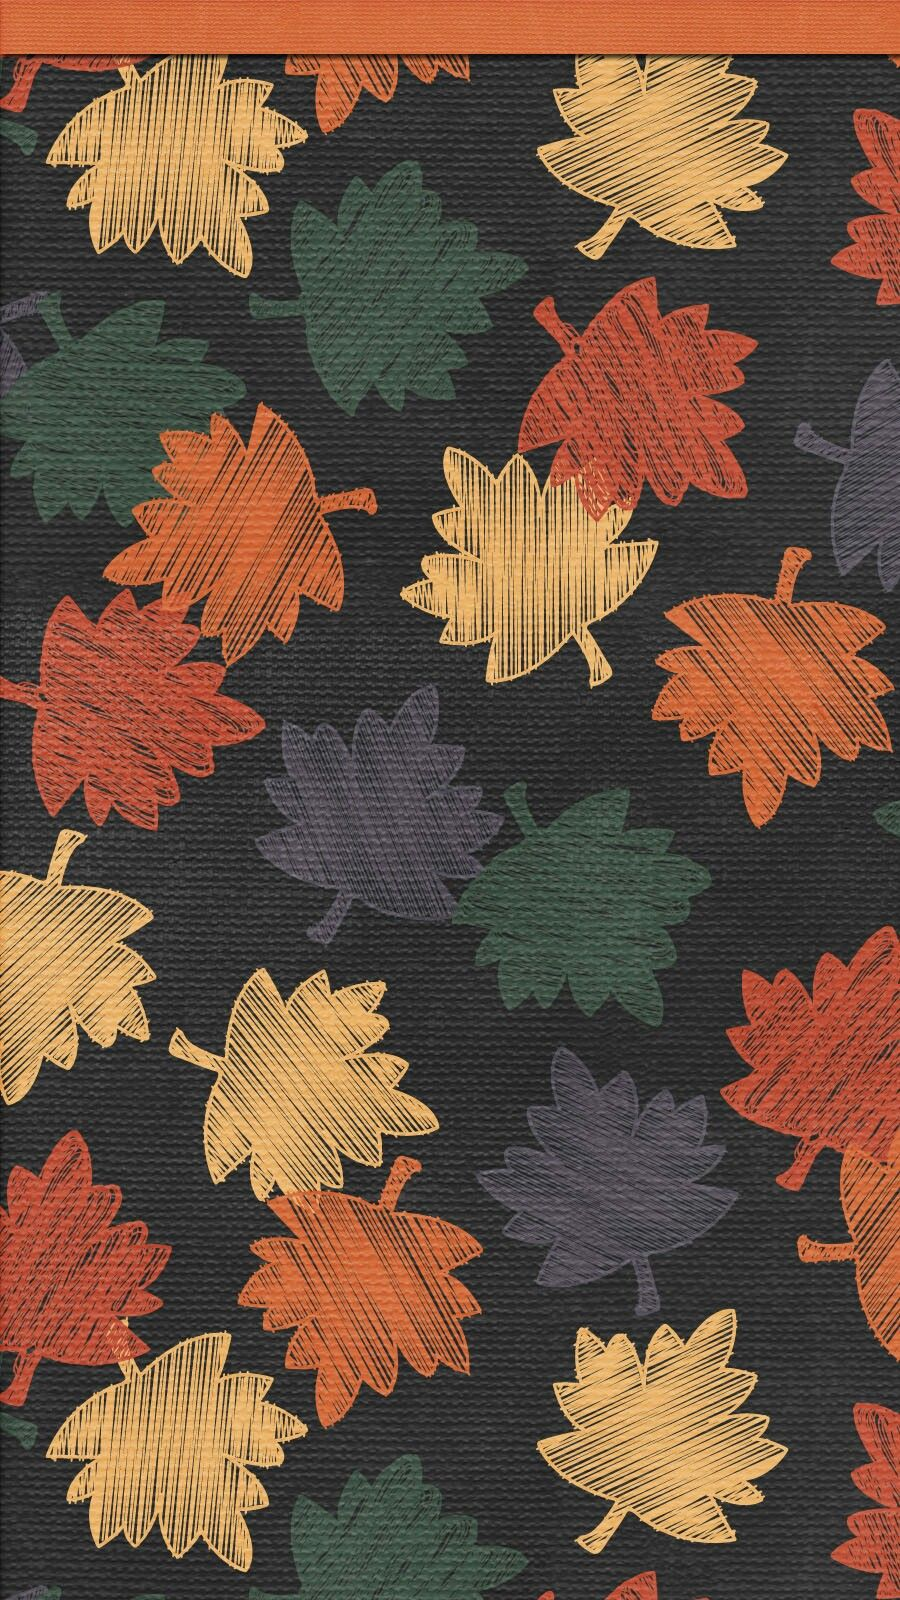 Autumn Wallpaper Iphone Android Theme Cute Fall Wallpaper Iphone Wallpaper Fall Iphone Wallpaper Pattern